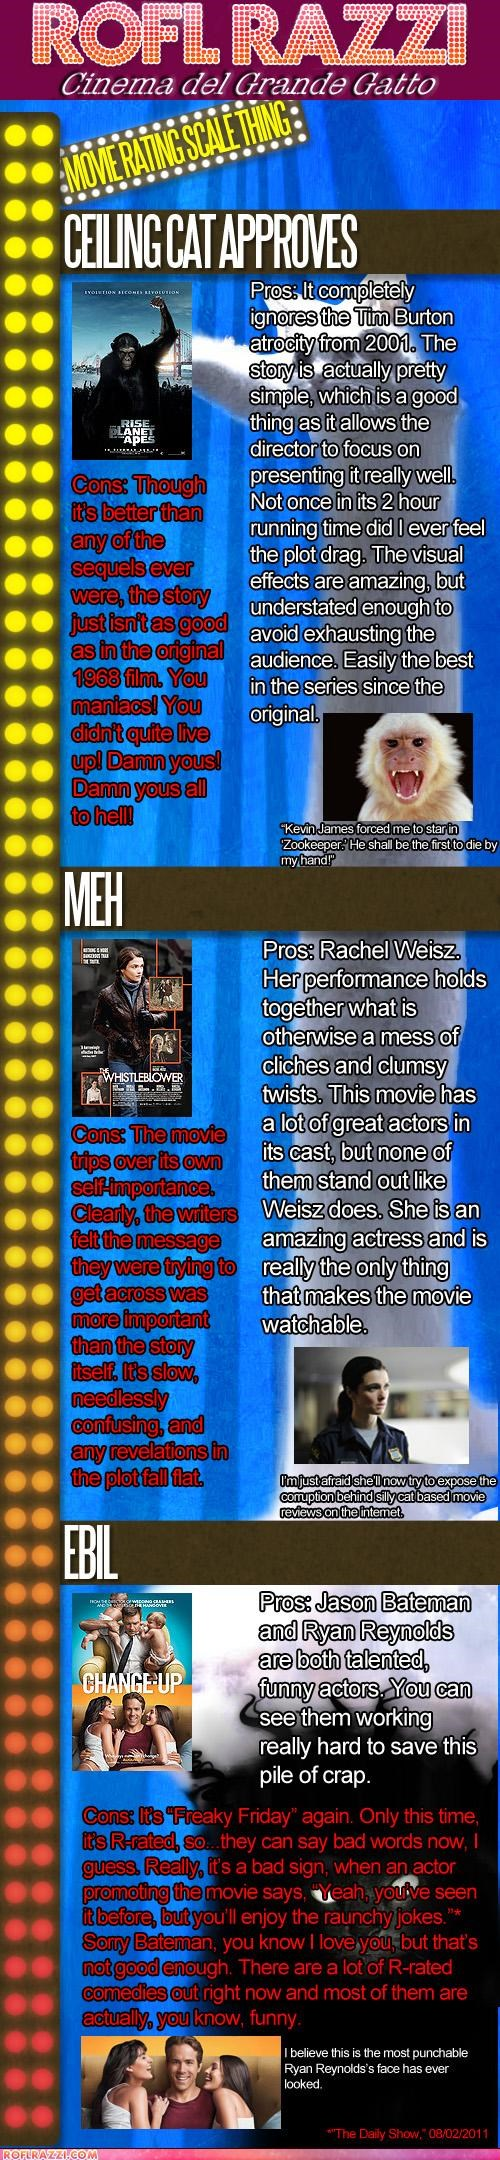 change up cinema jason bateman movies rachel weisz reviews rise of the planet of the apes ryan reynolds the whistleblower tom felton - 5055107072